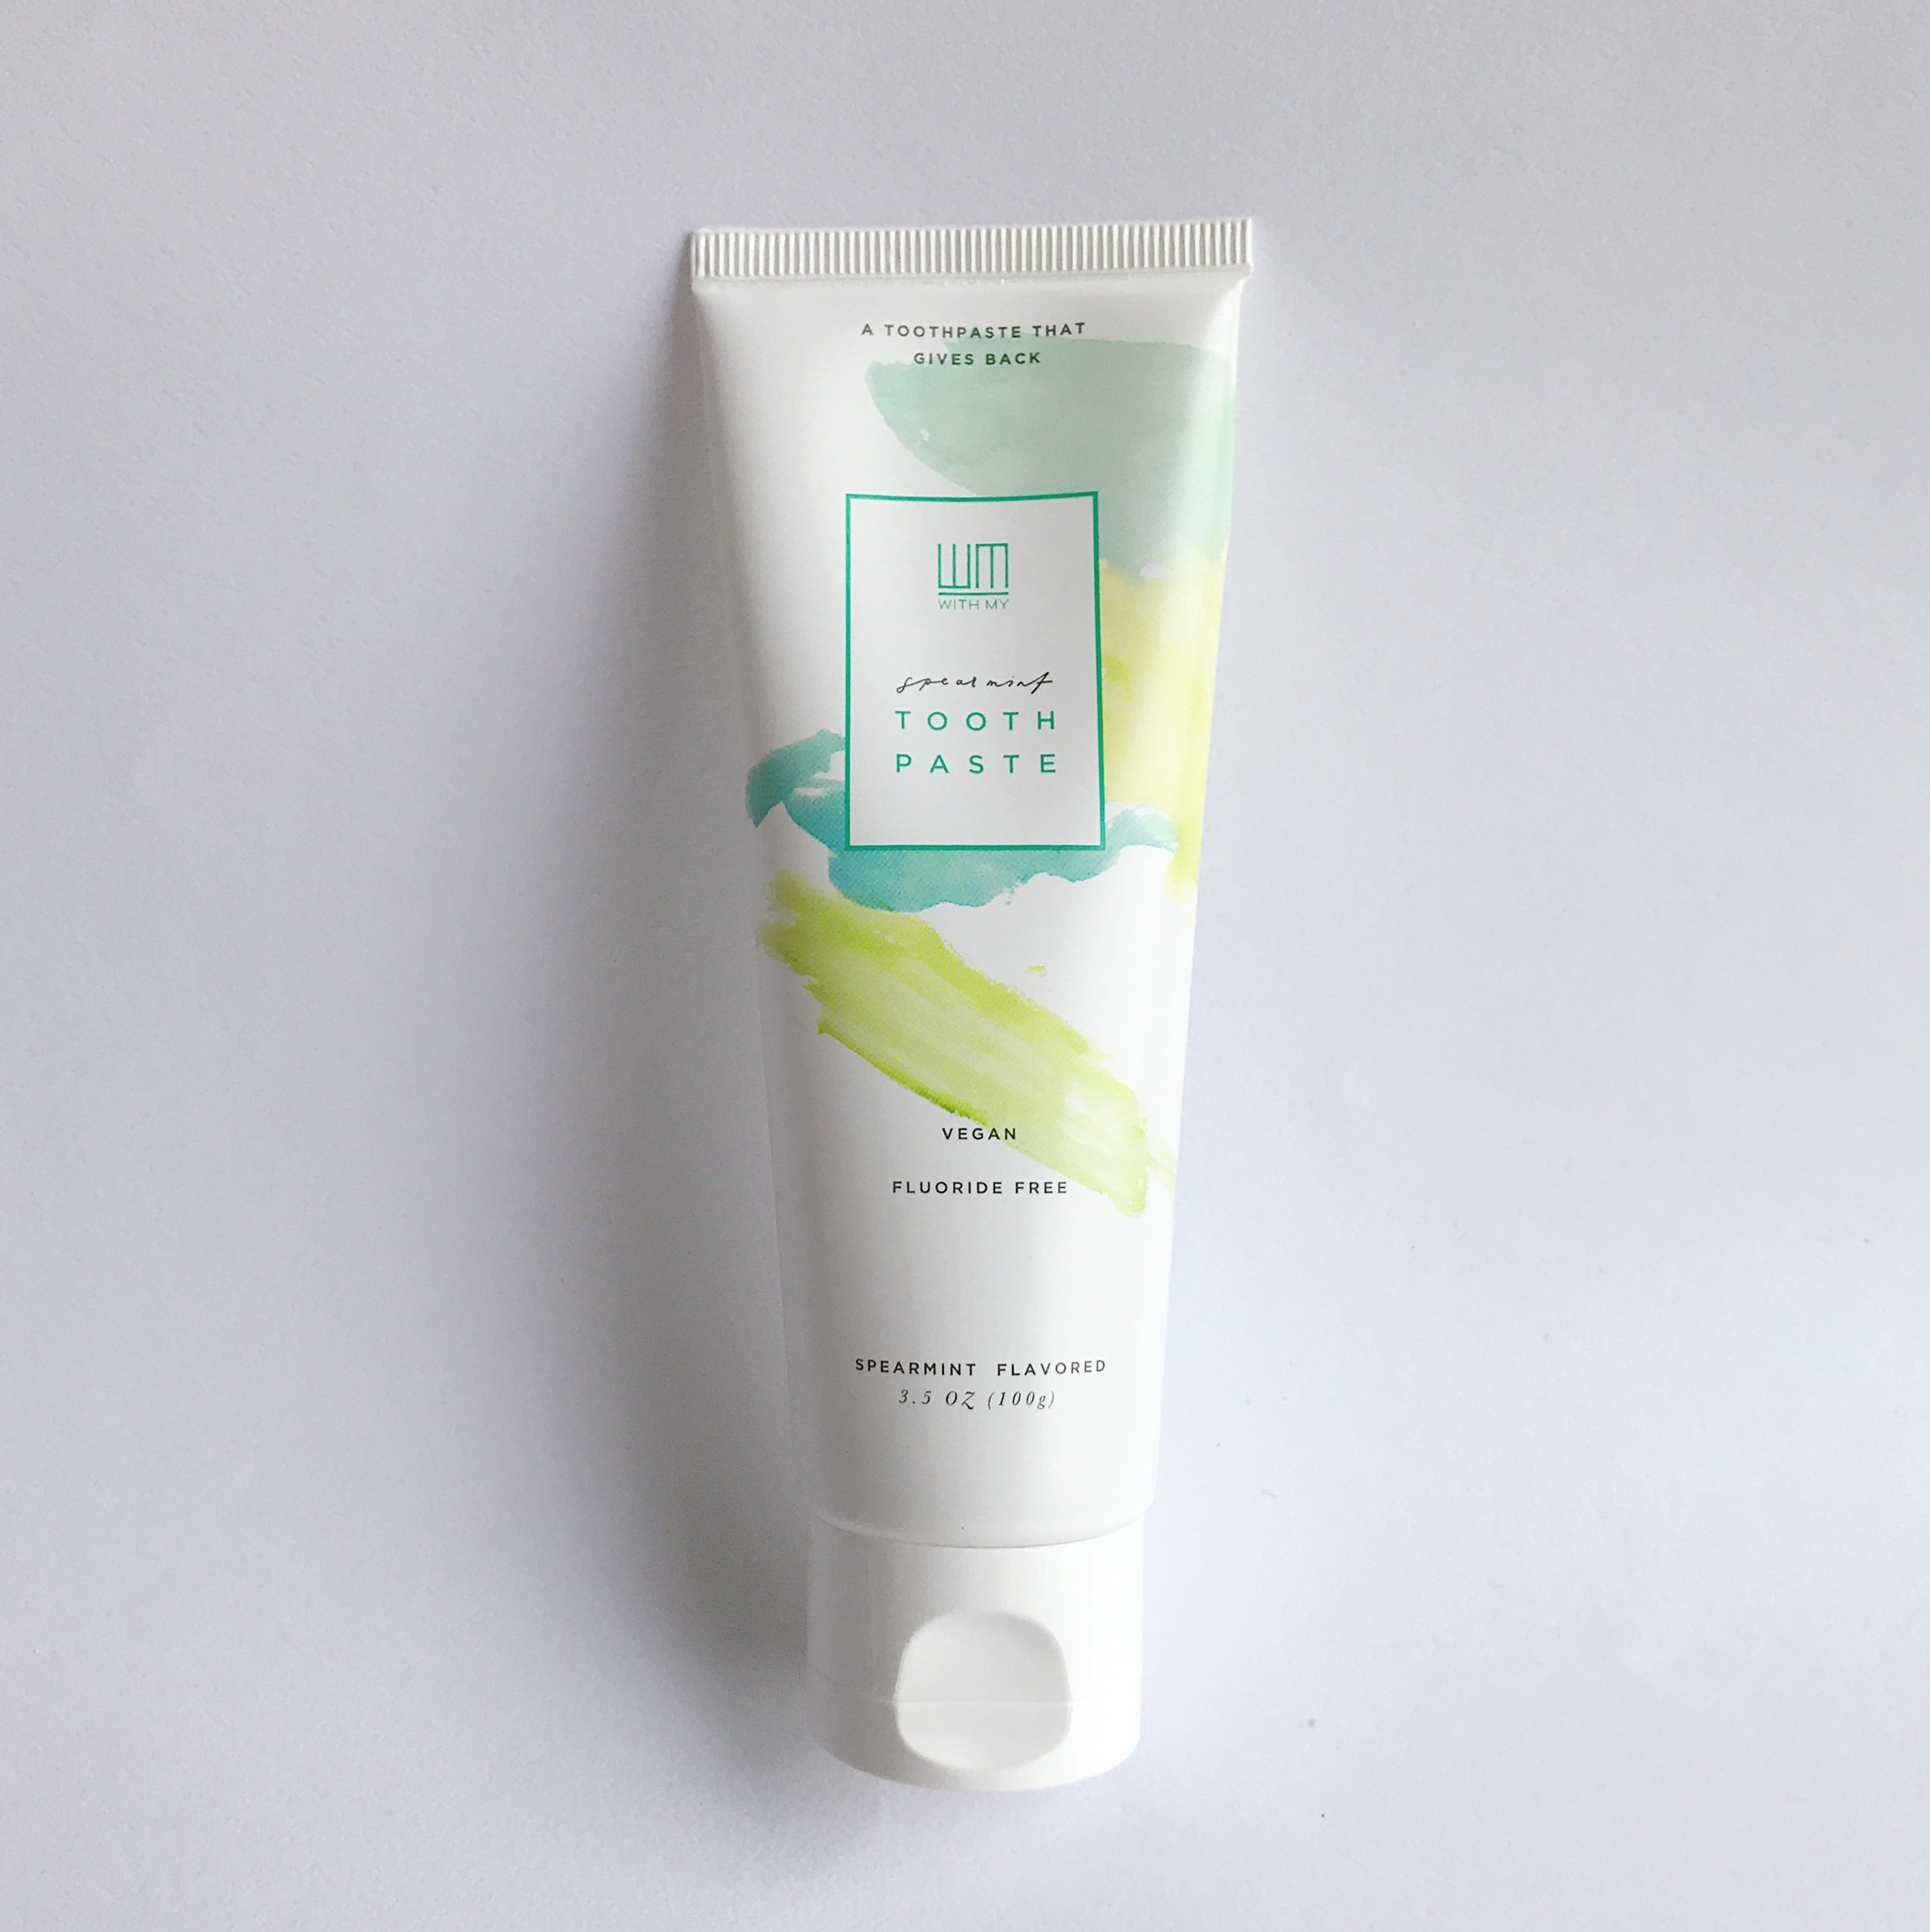 WITH MY spearmint toothpaste  3.4oz $8.50